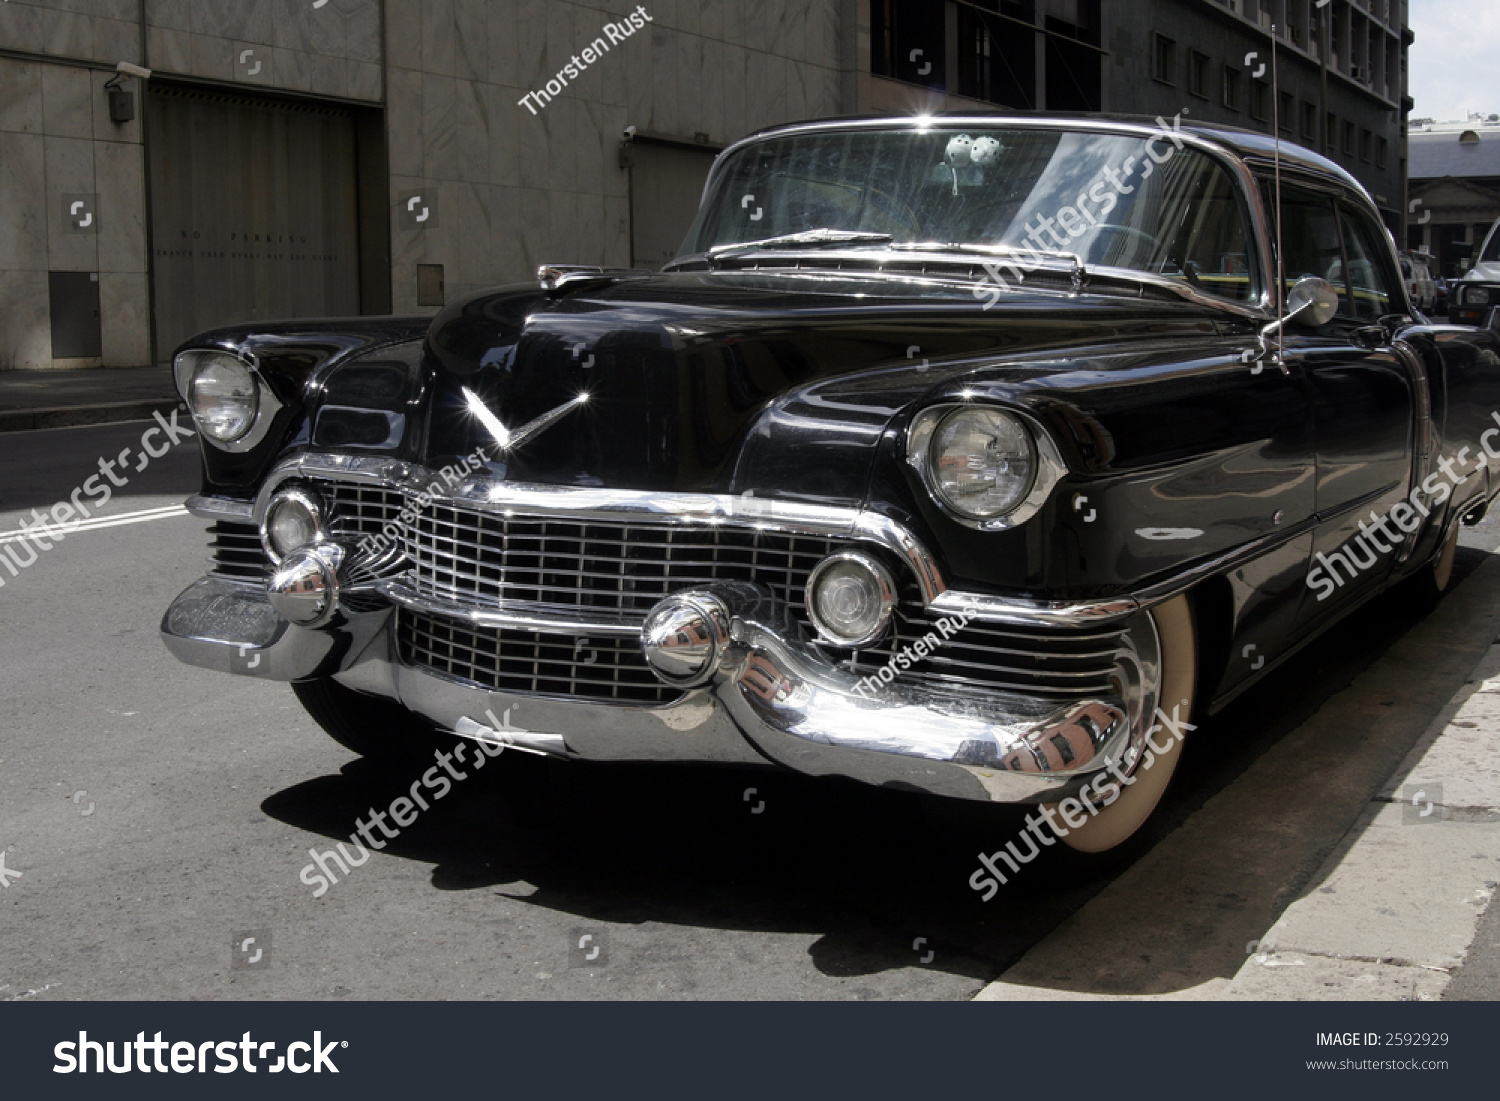 Old Black Vintage Classic Old American Stock Photo 2592929 ...